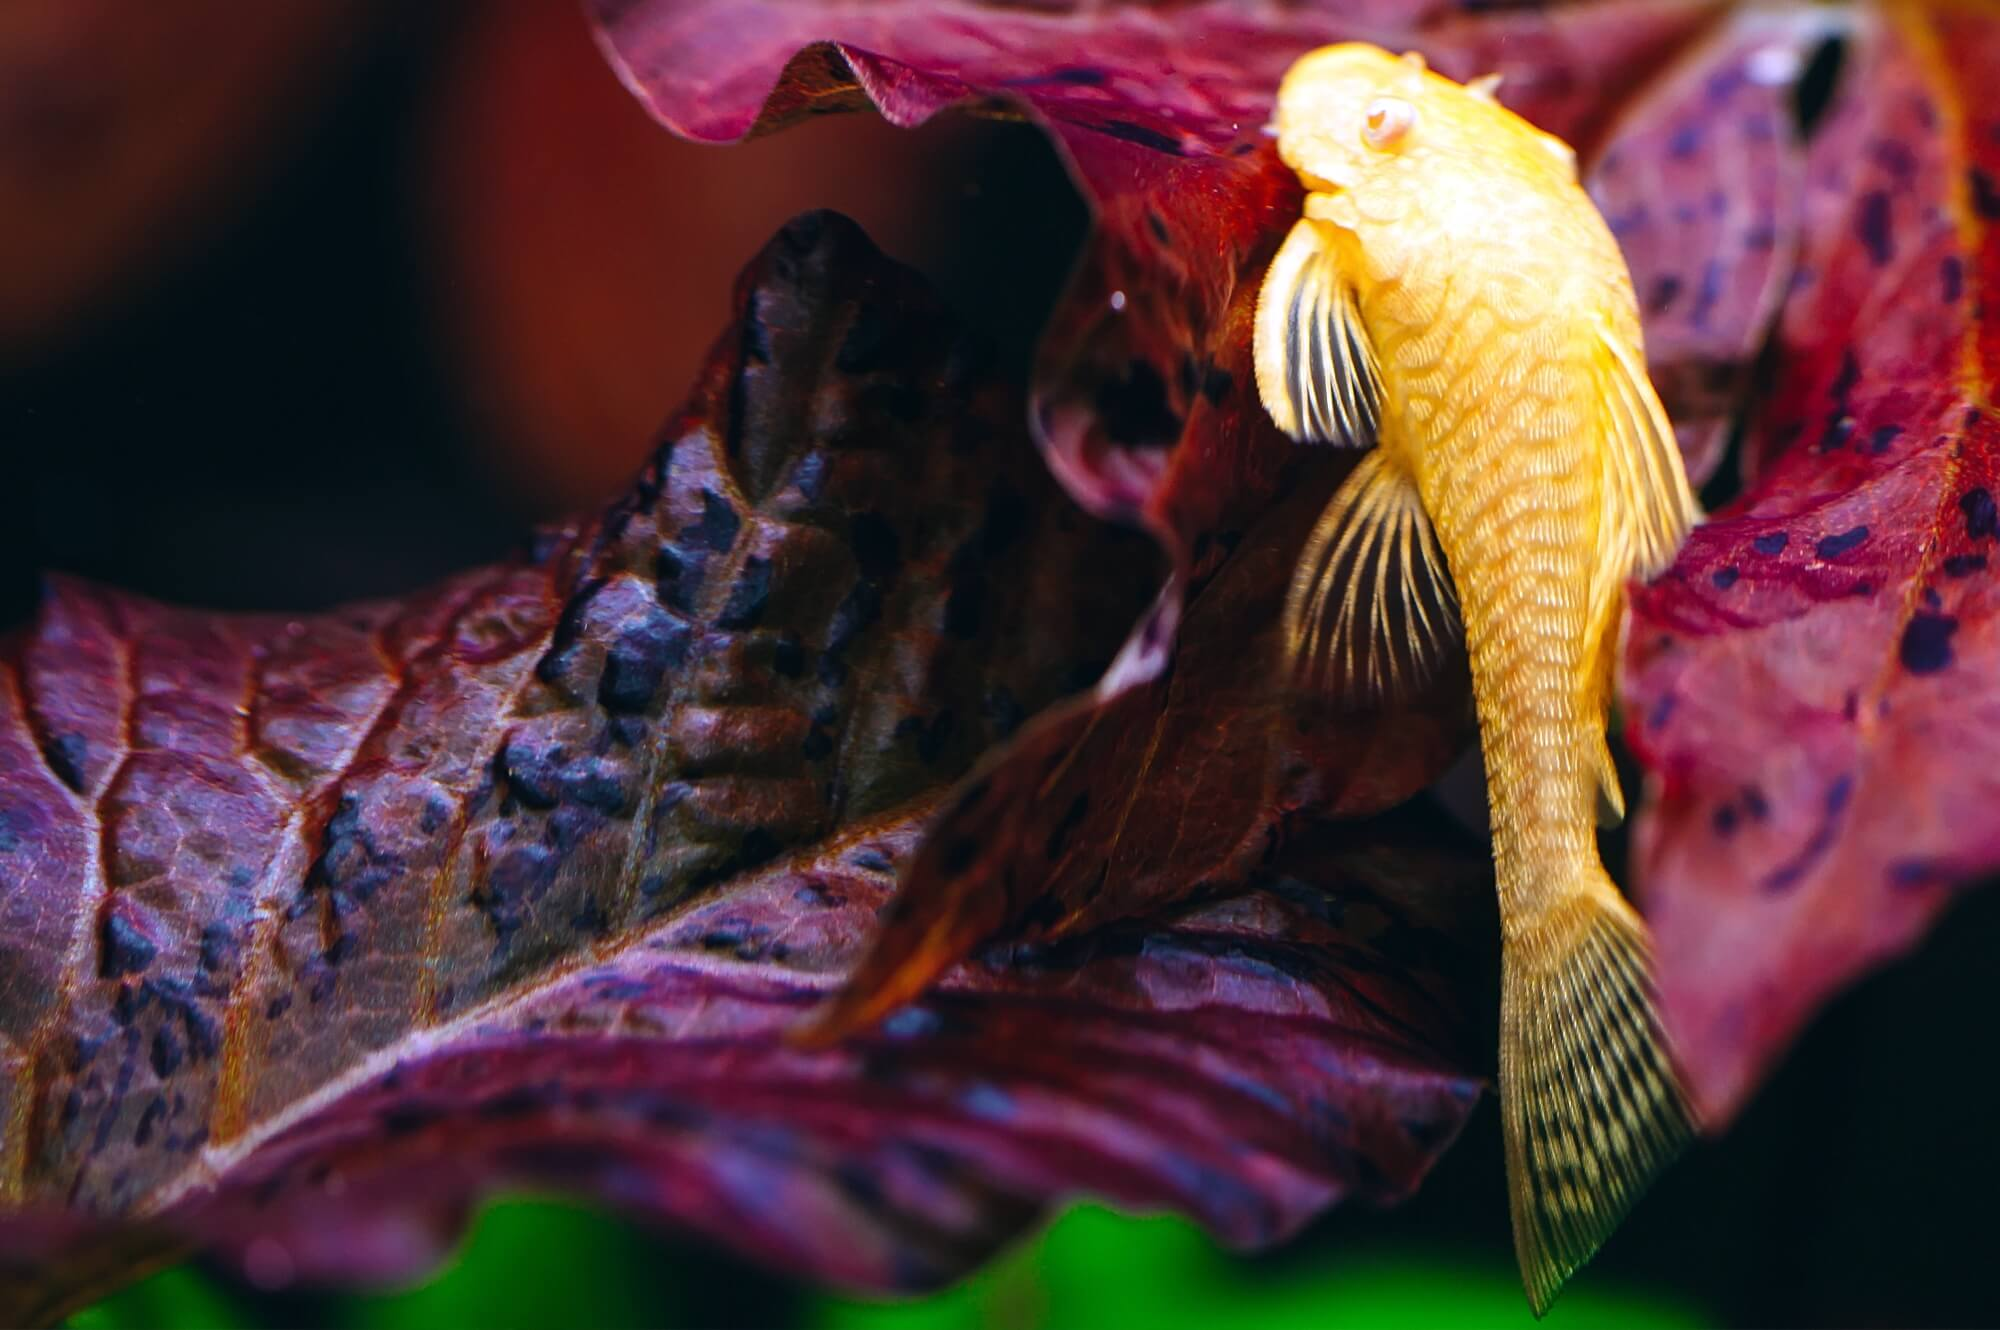 Golden Bristlenose Plecostomus - Ancistrus sp